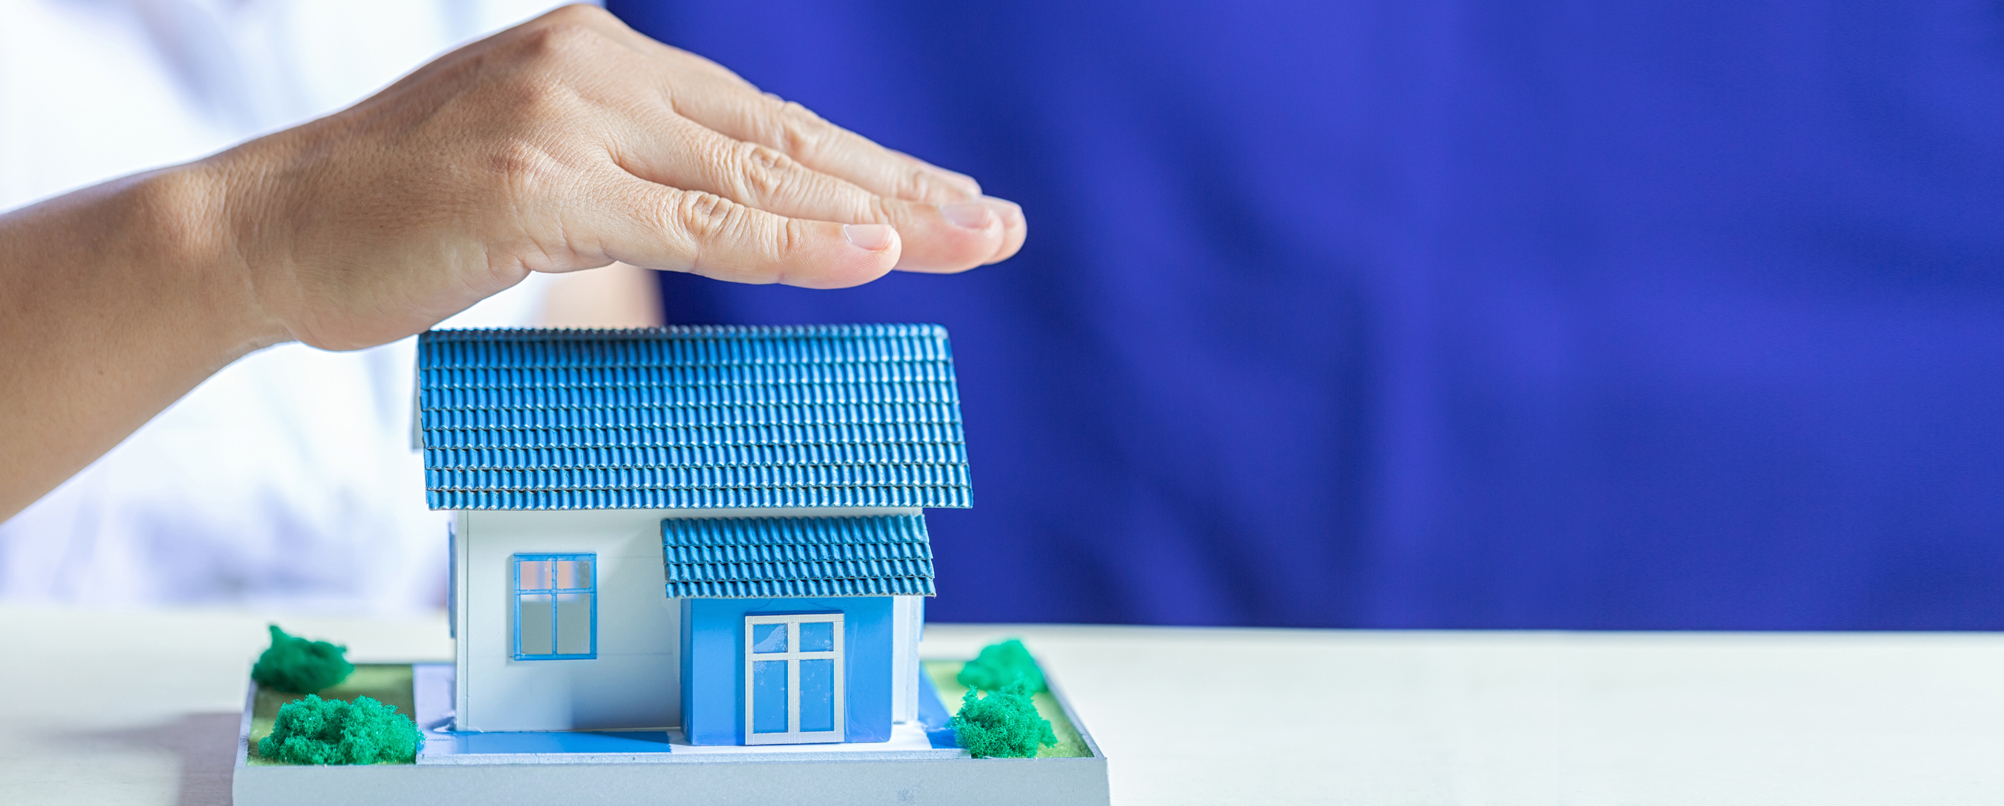 Hand protects small model house